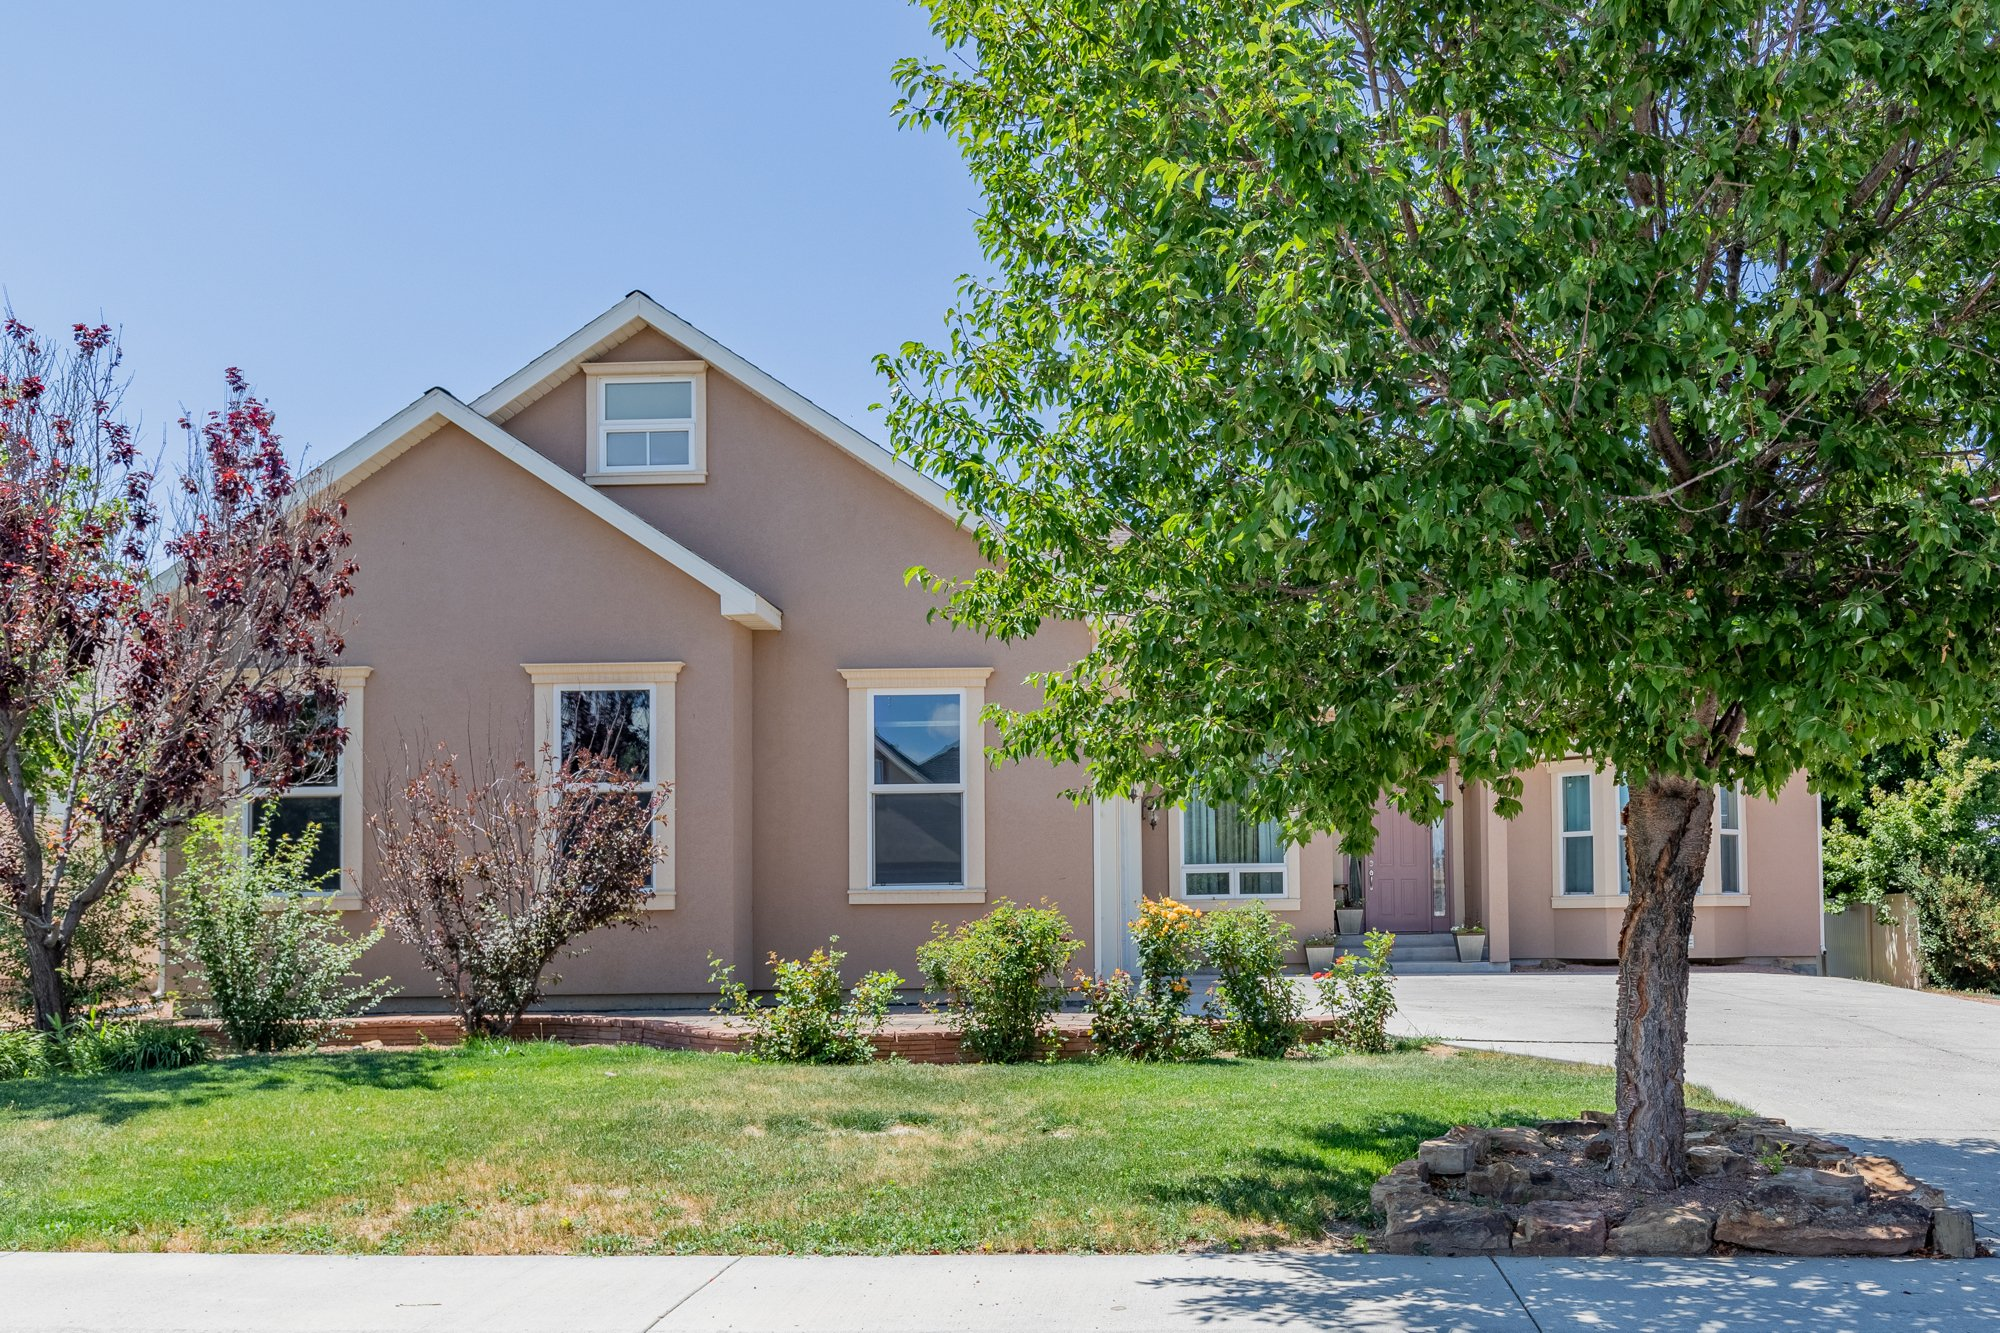 Front Landscaping - 2924 Lost Creek Rd S. Montrose, CO 81401 - Atha Team Real Estate Agents